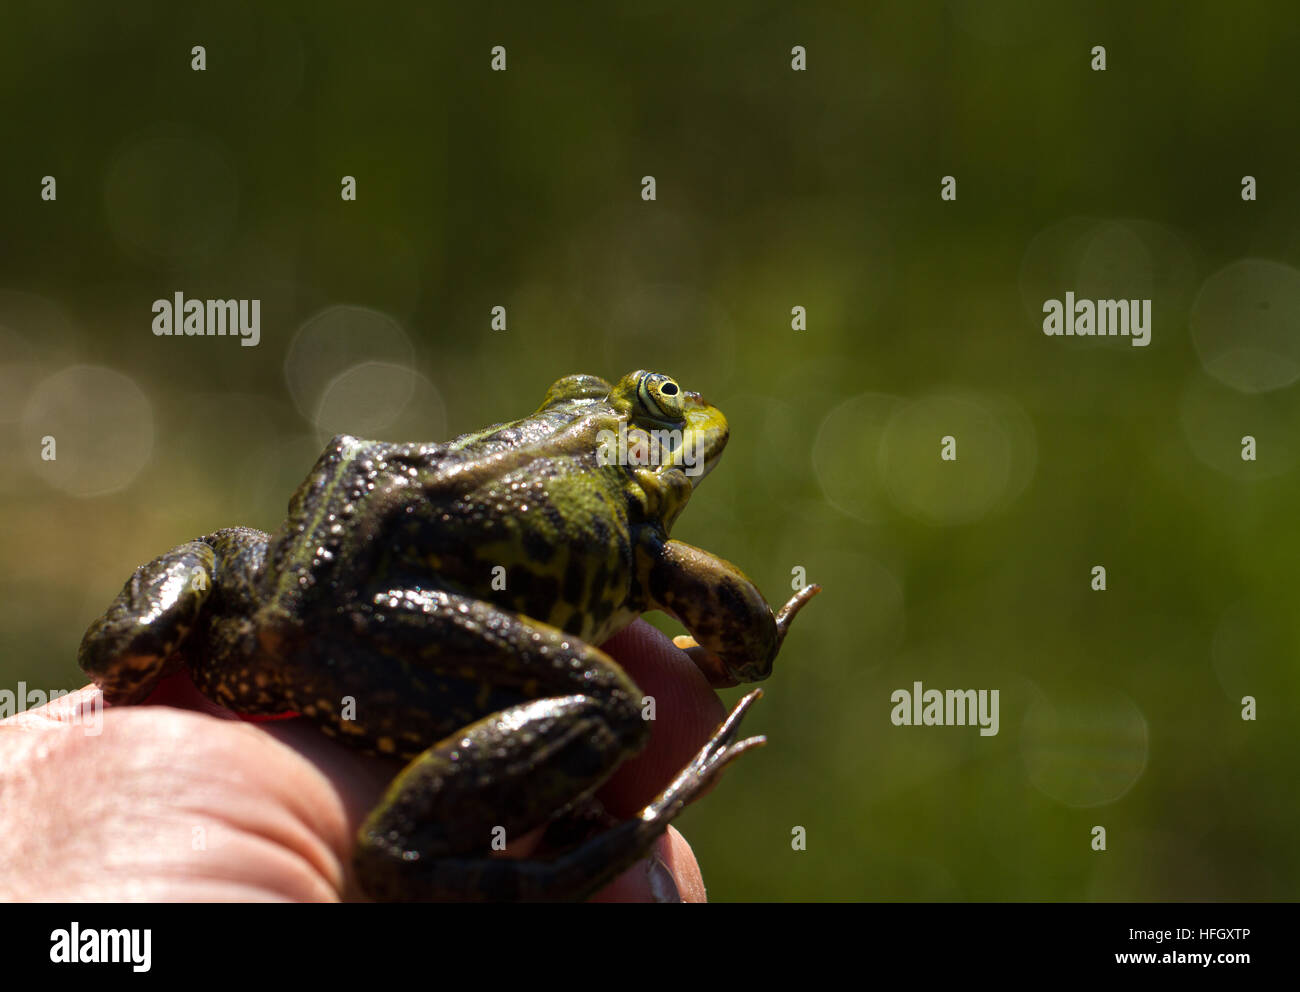 Green frog held by a herpetologist - Stock Image